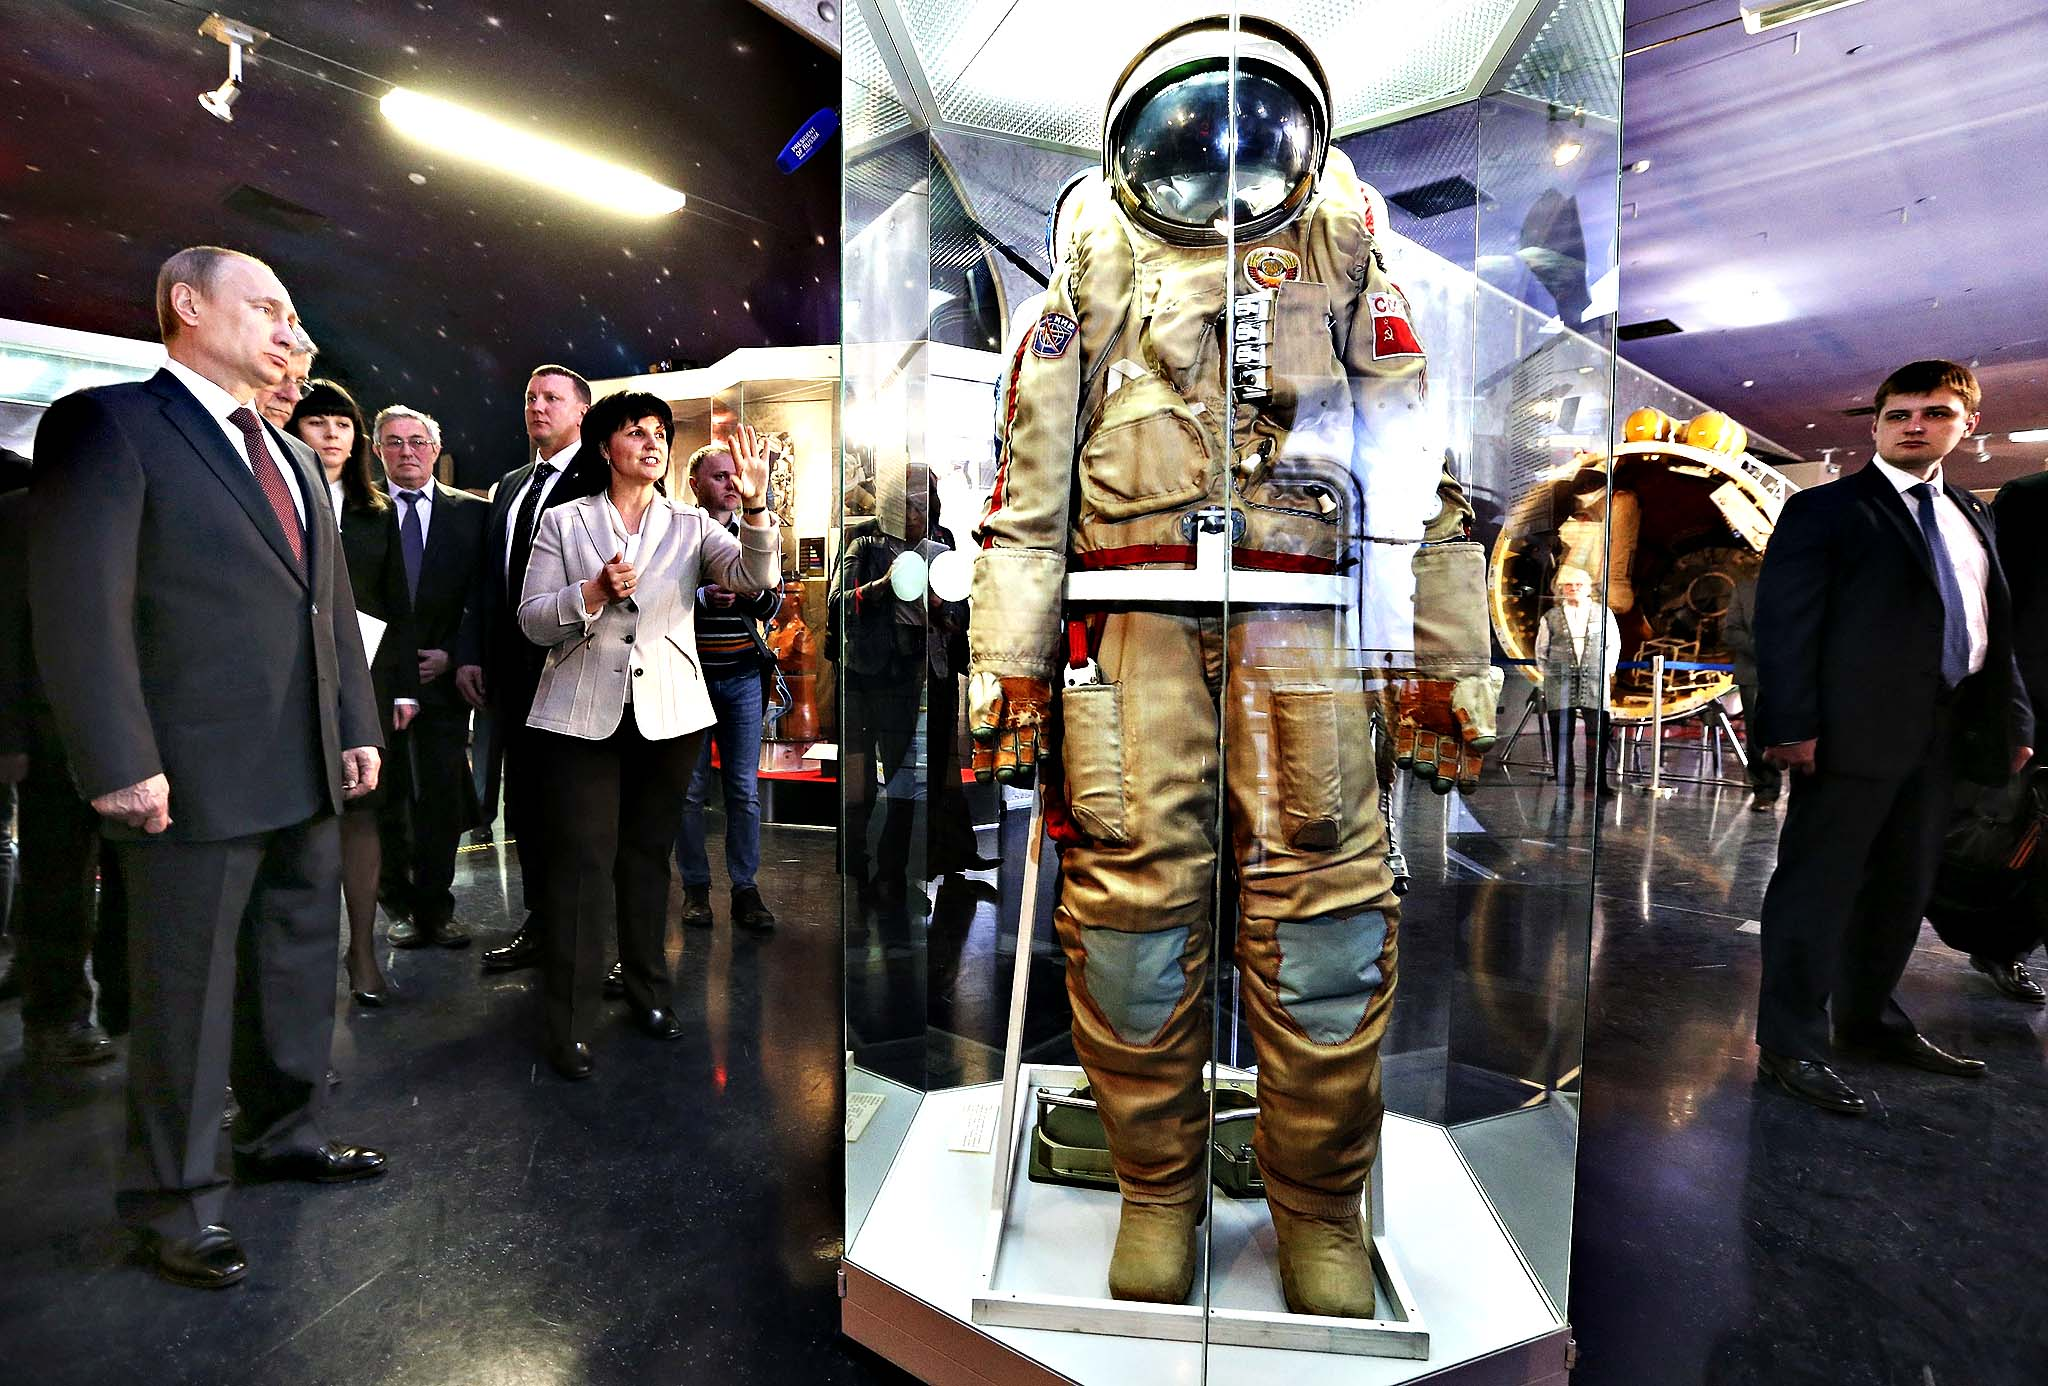 Russia's President Vladimir Putin (L) listens to explanations and looks at an exhibit as he visits the Cosmonautics Memorial Museum in Moscow, Russia, 11 April 2014.